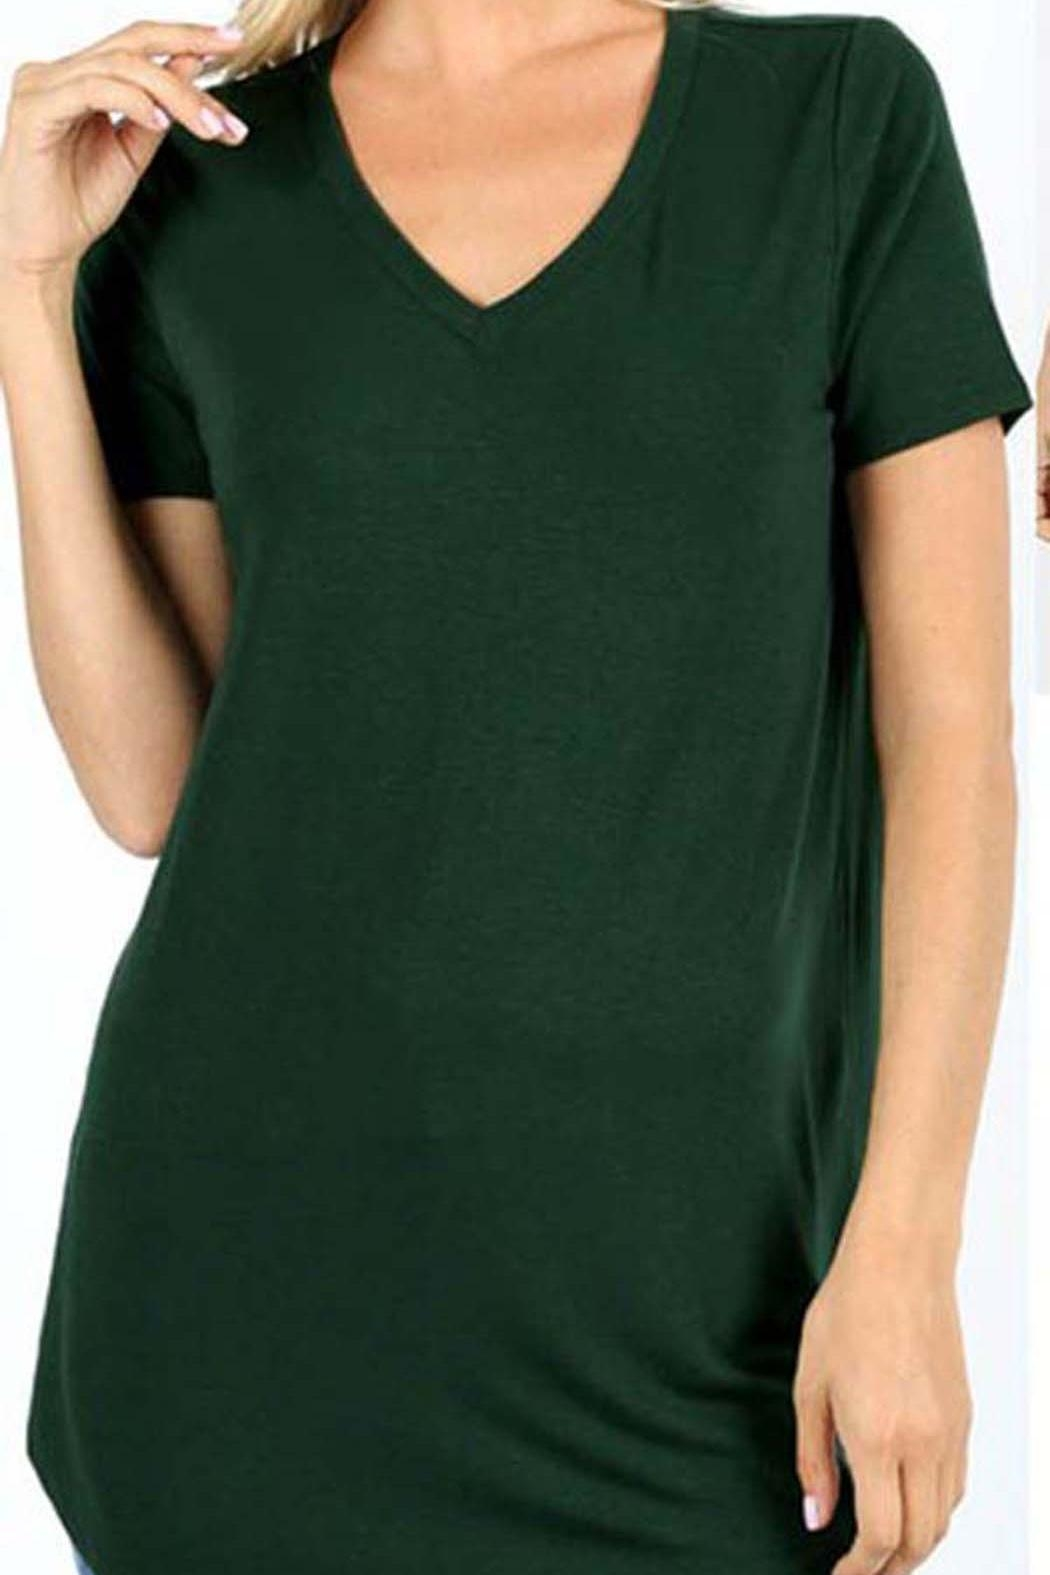 Zenana Outfitters Premium V-Neck Top - Front Cropped Image